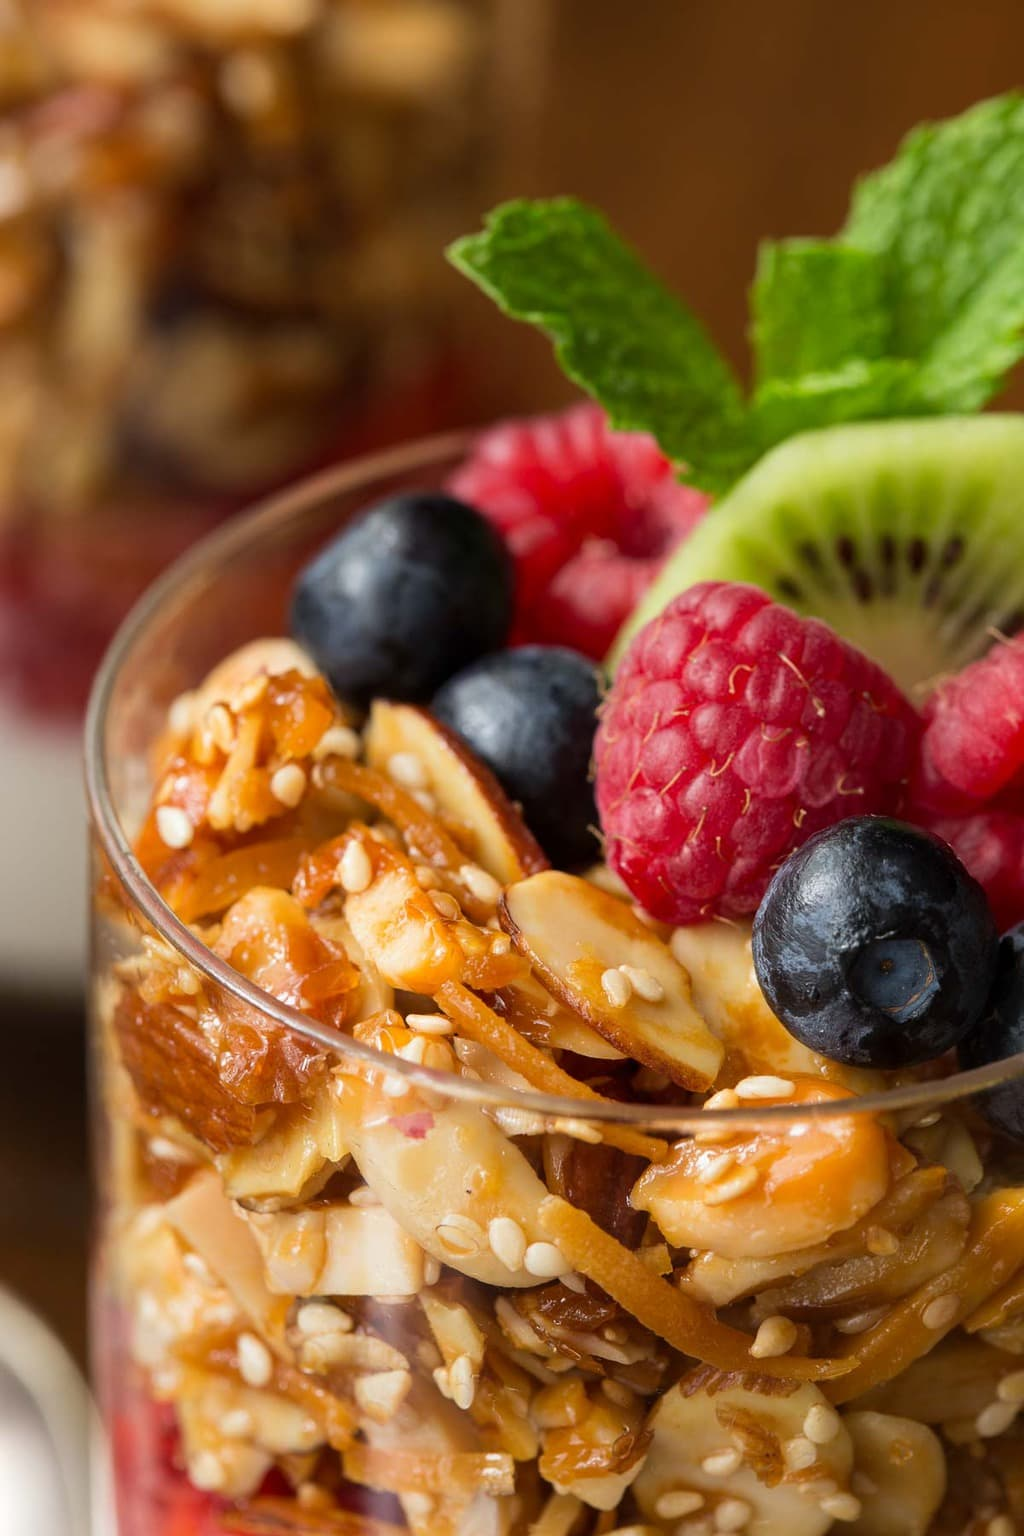 Vertical closeup photo of Double Almond Paleo Granola in a serving glass garnished with fresh fruit.